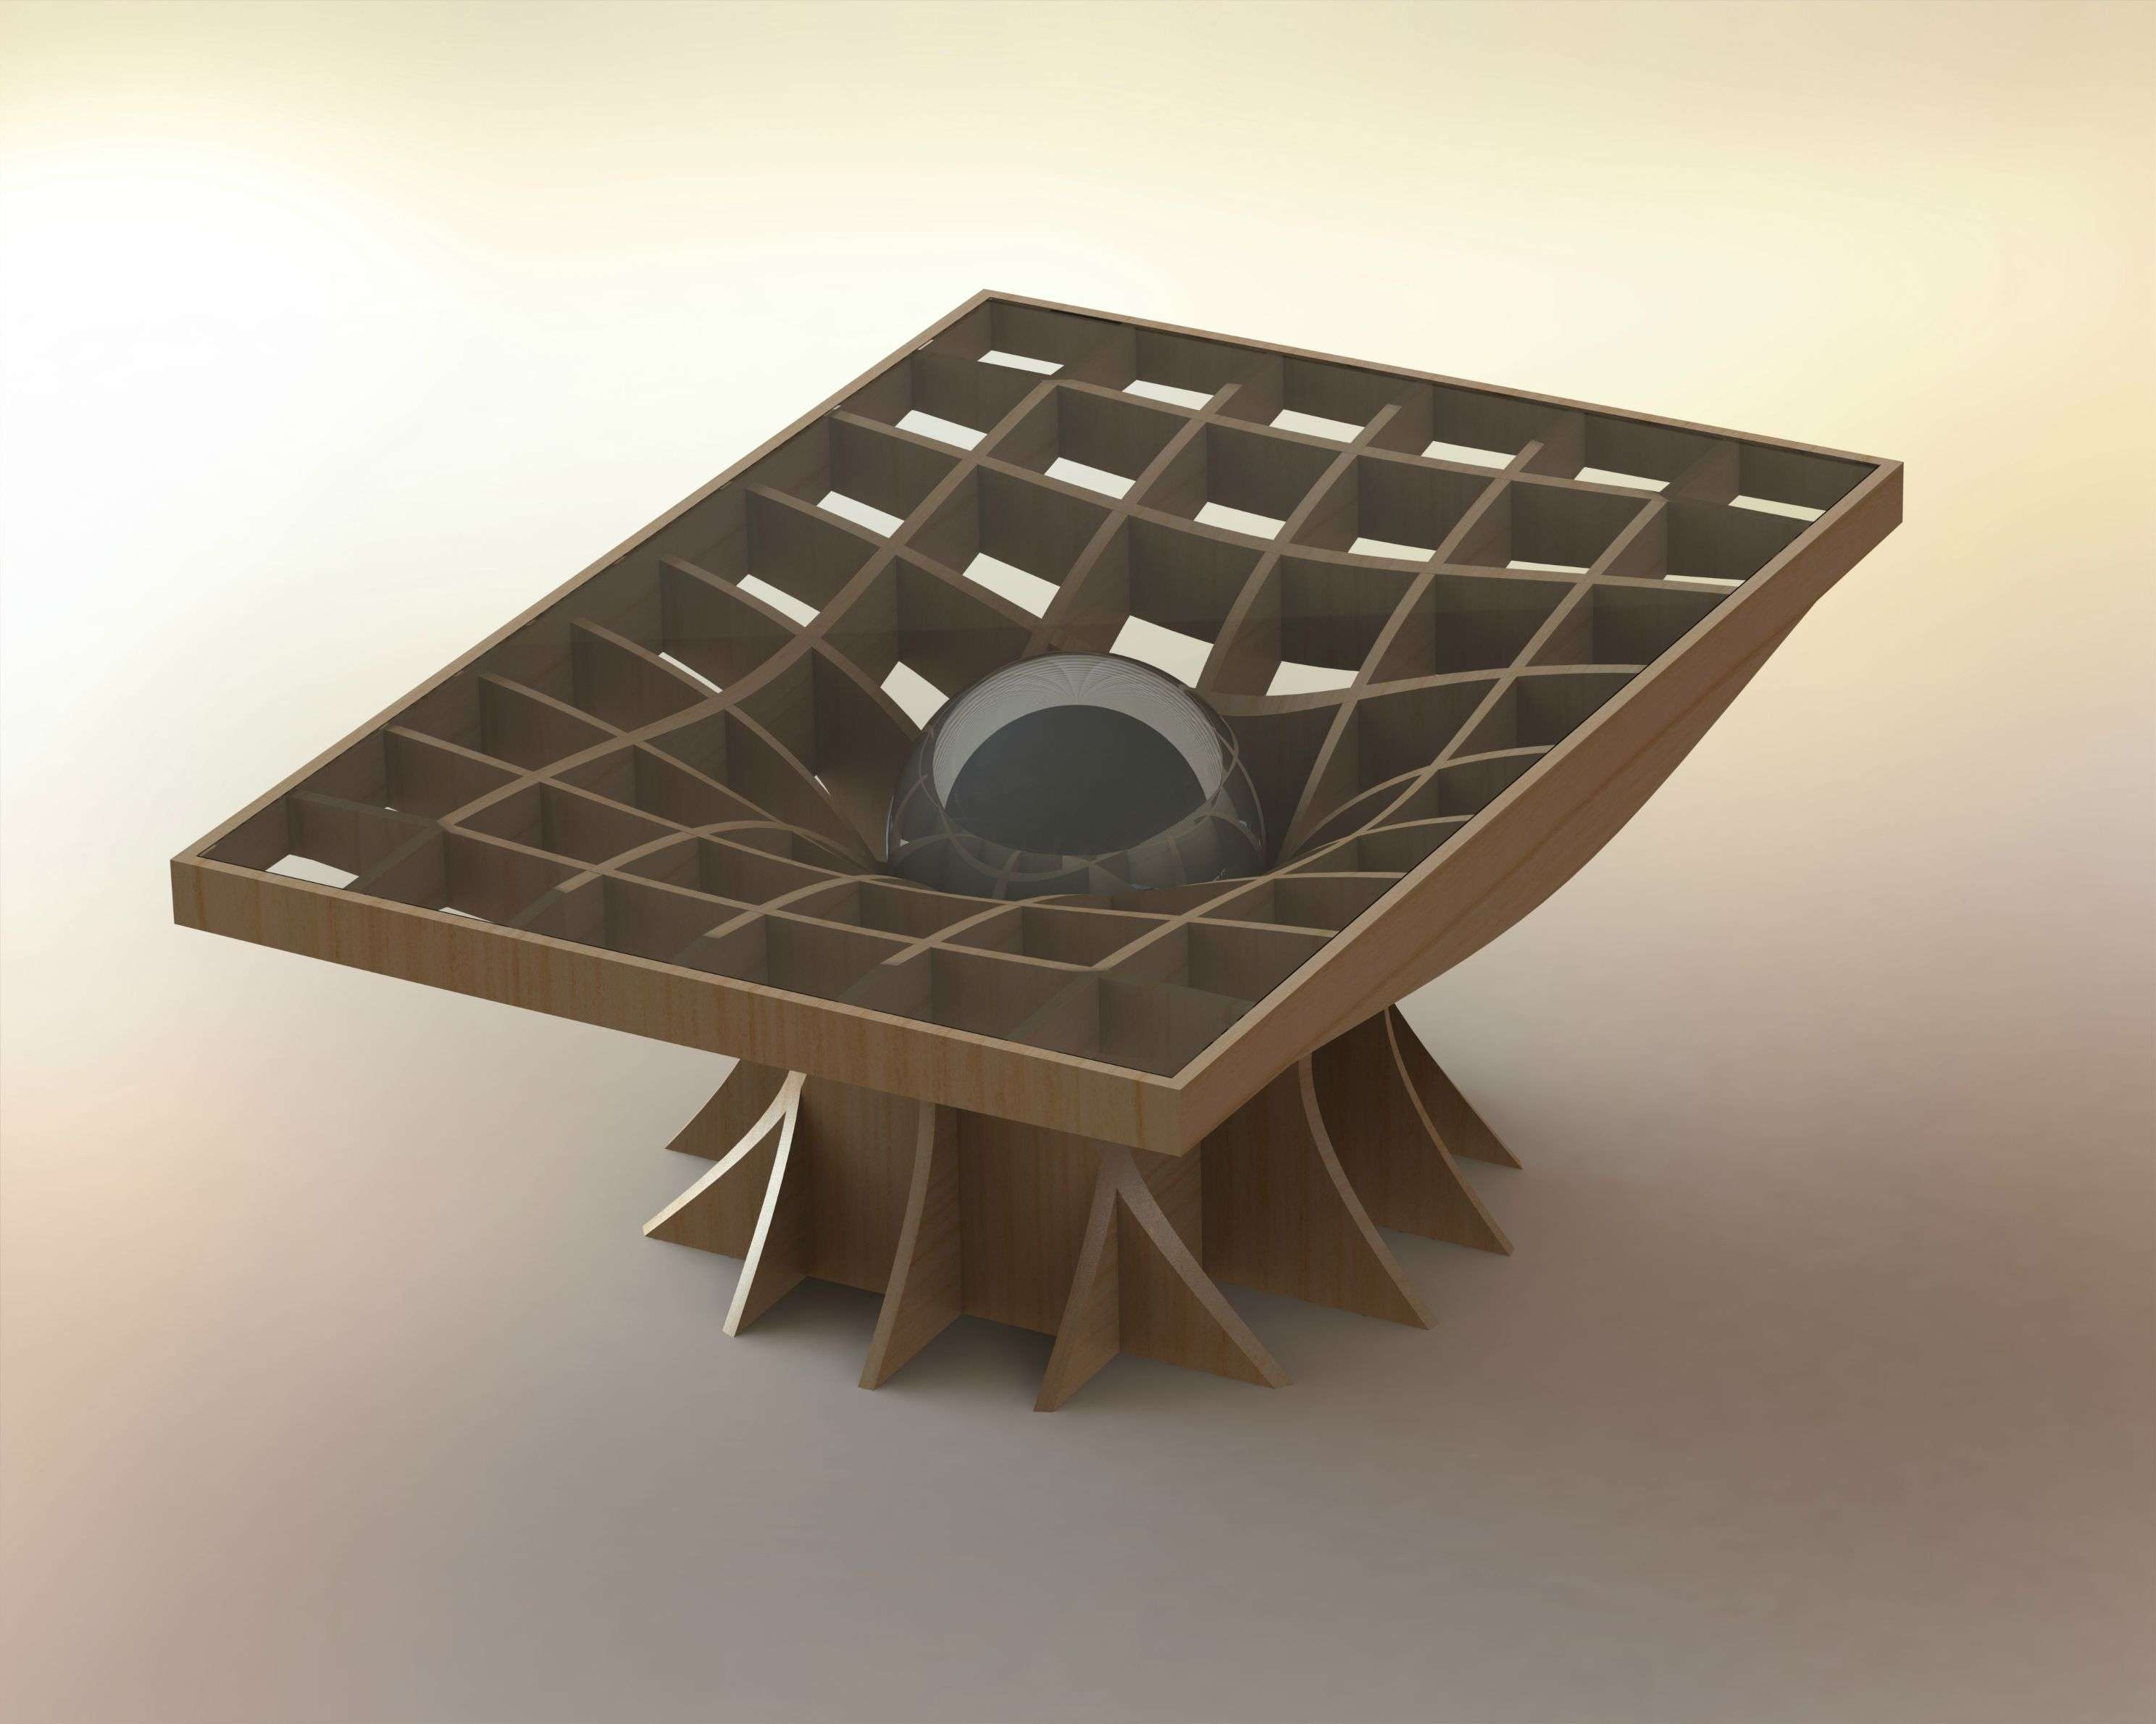 A Physics Inspired Coffee Table Pertaining To Most Recently Released Space Coffee Tables (View 1 of 20)